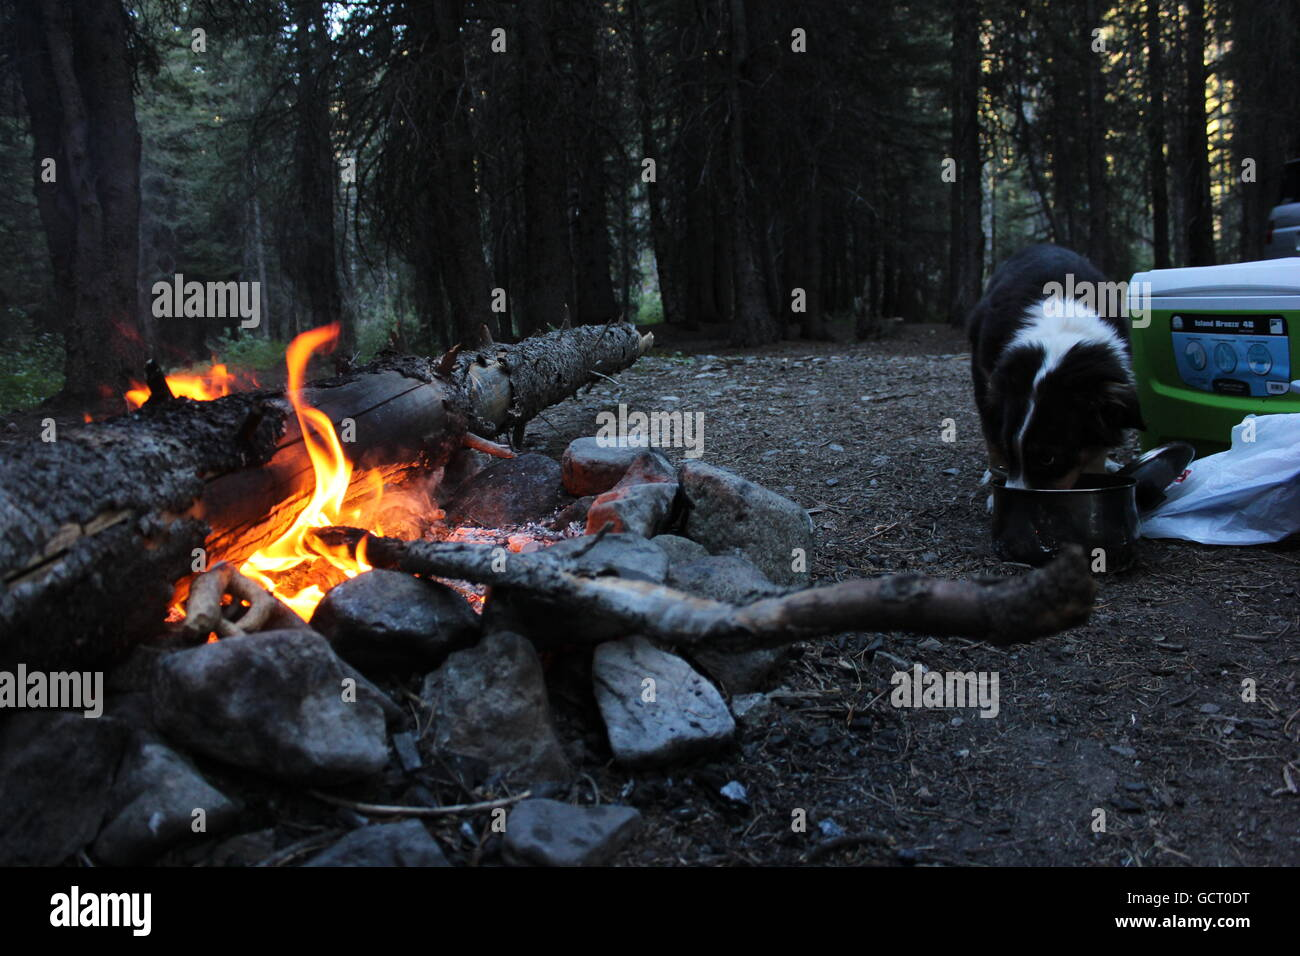 A puppy licks a campfire cooking pot clean while camping. - Stock Image